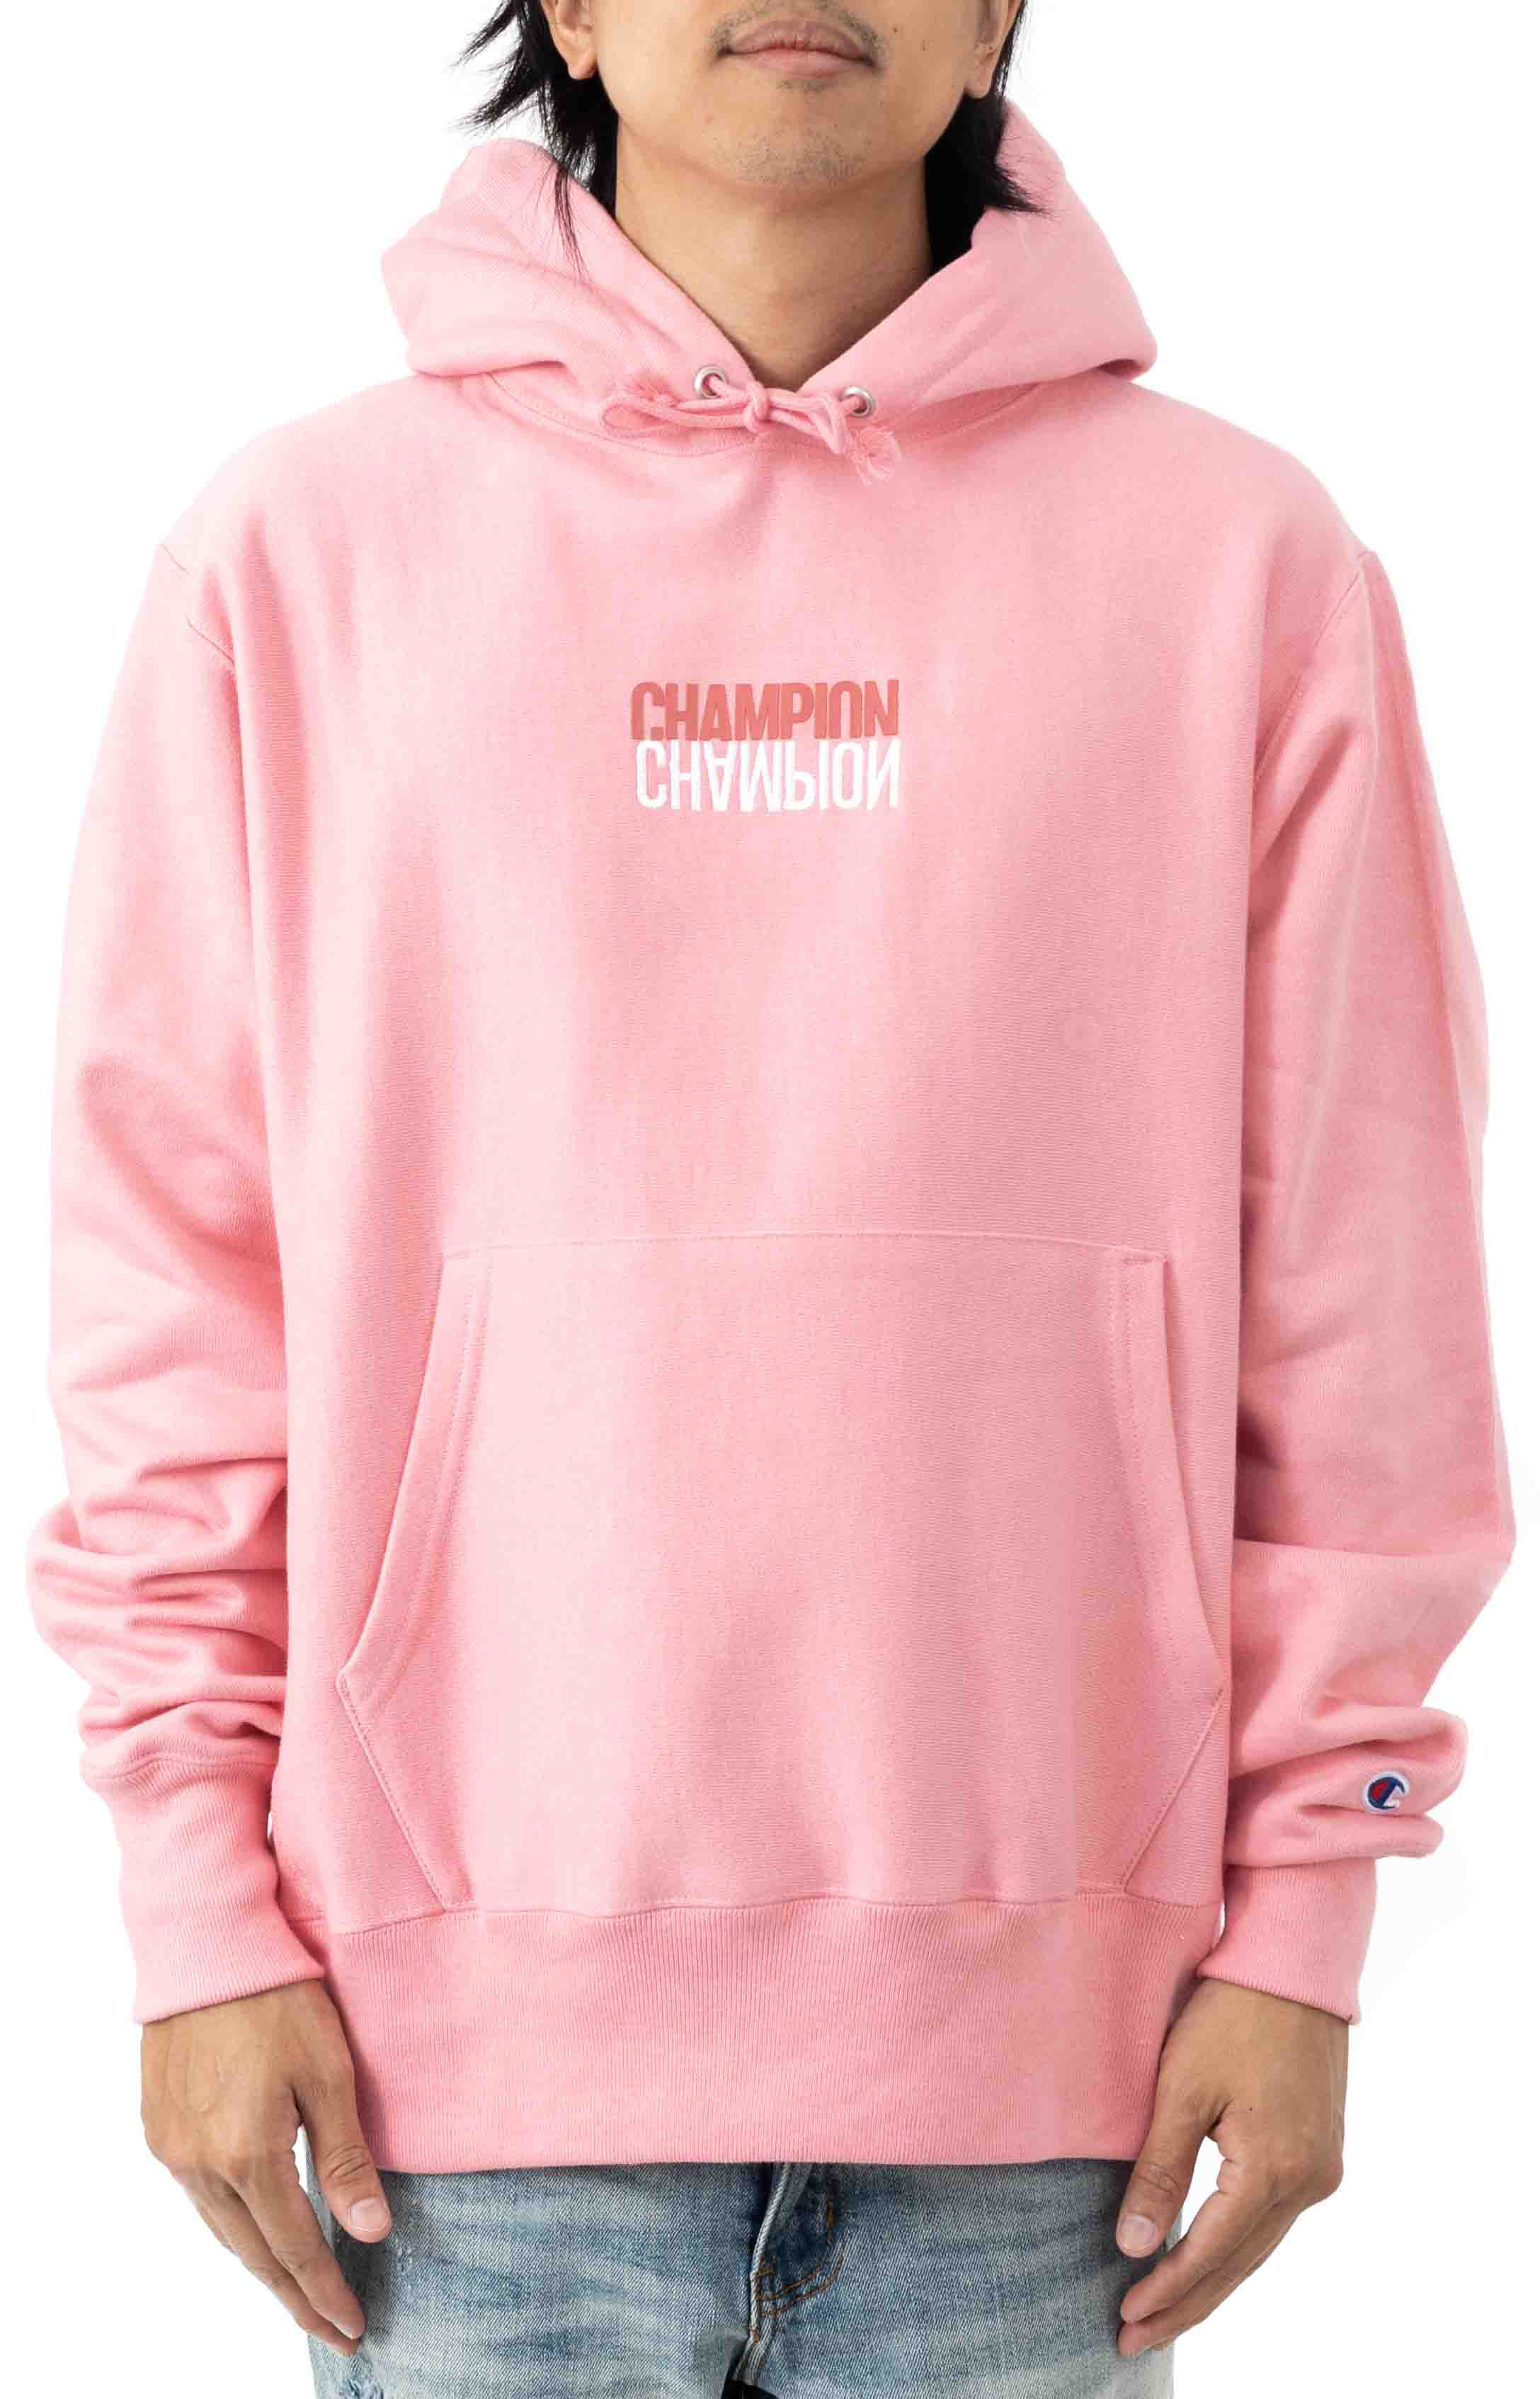 Reflective Logo Pullover Hoodie - Guava Pink